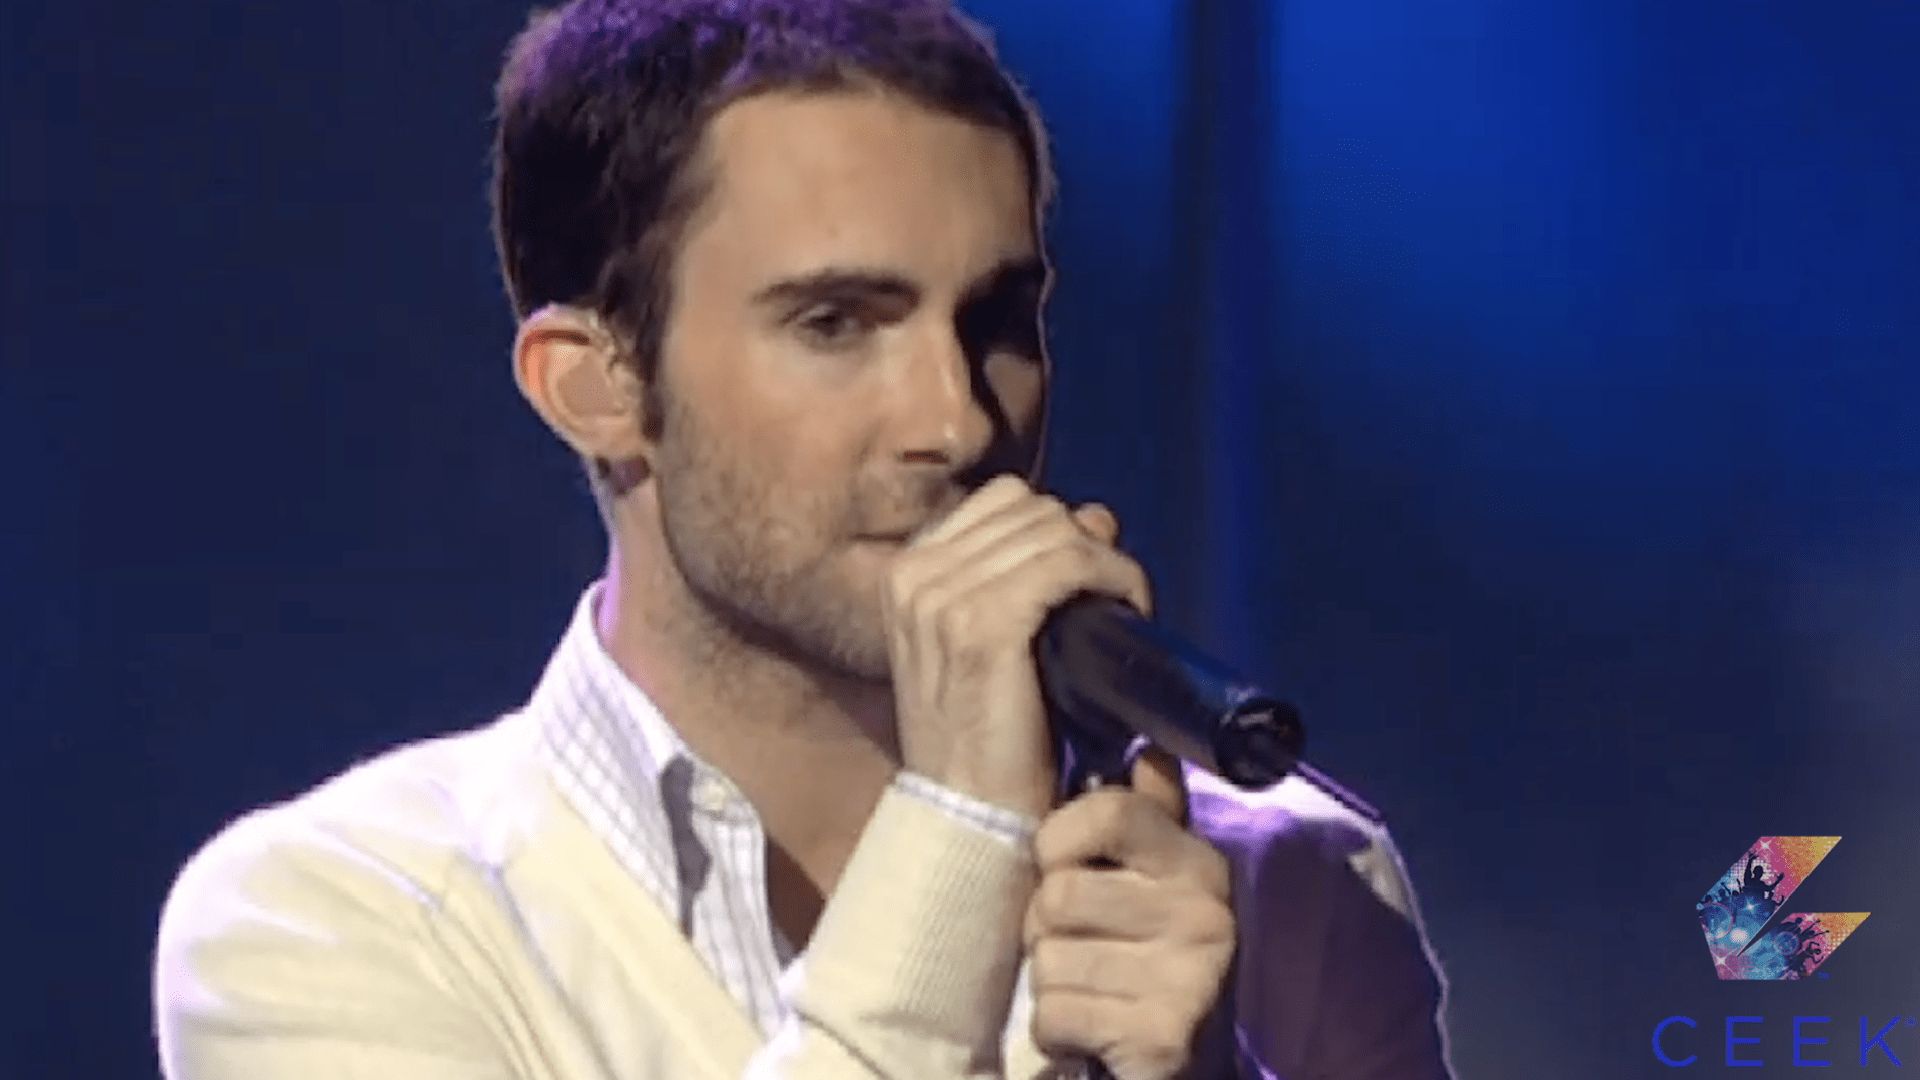 Maroon 5 Perform She Will Be Loved at the World Music Awards